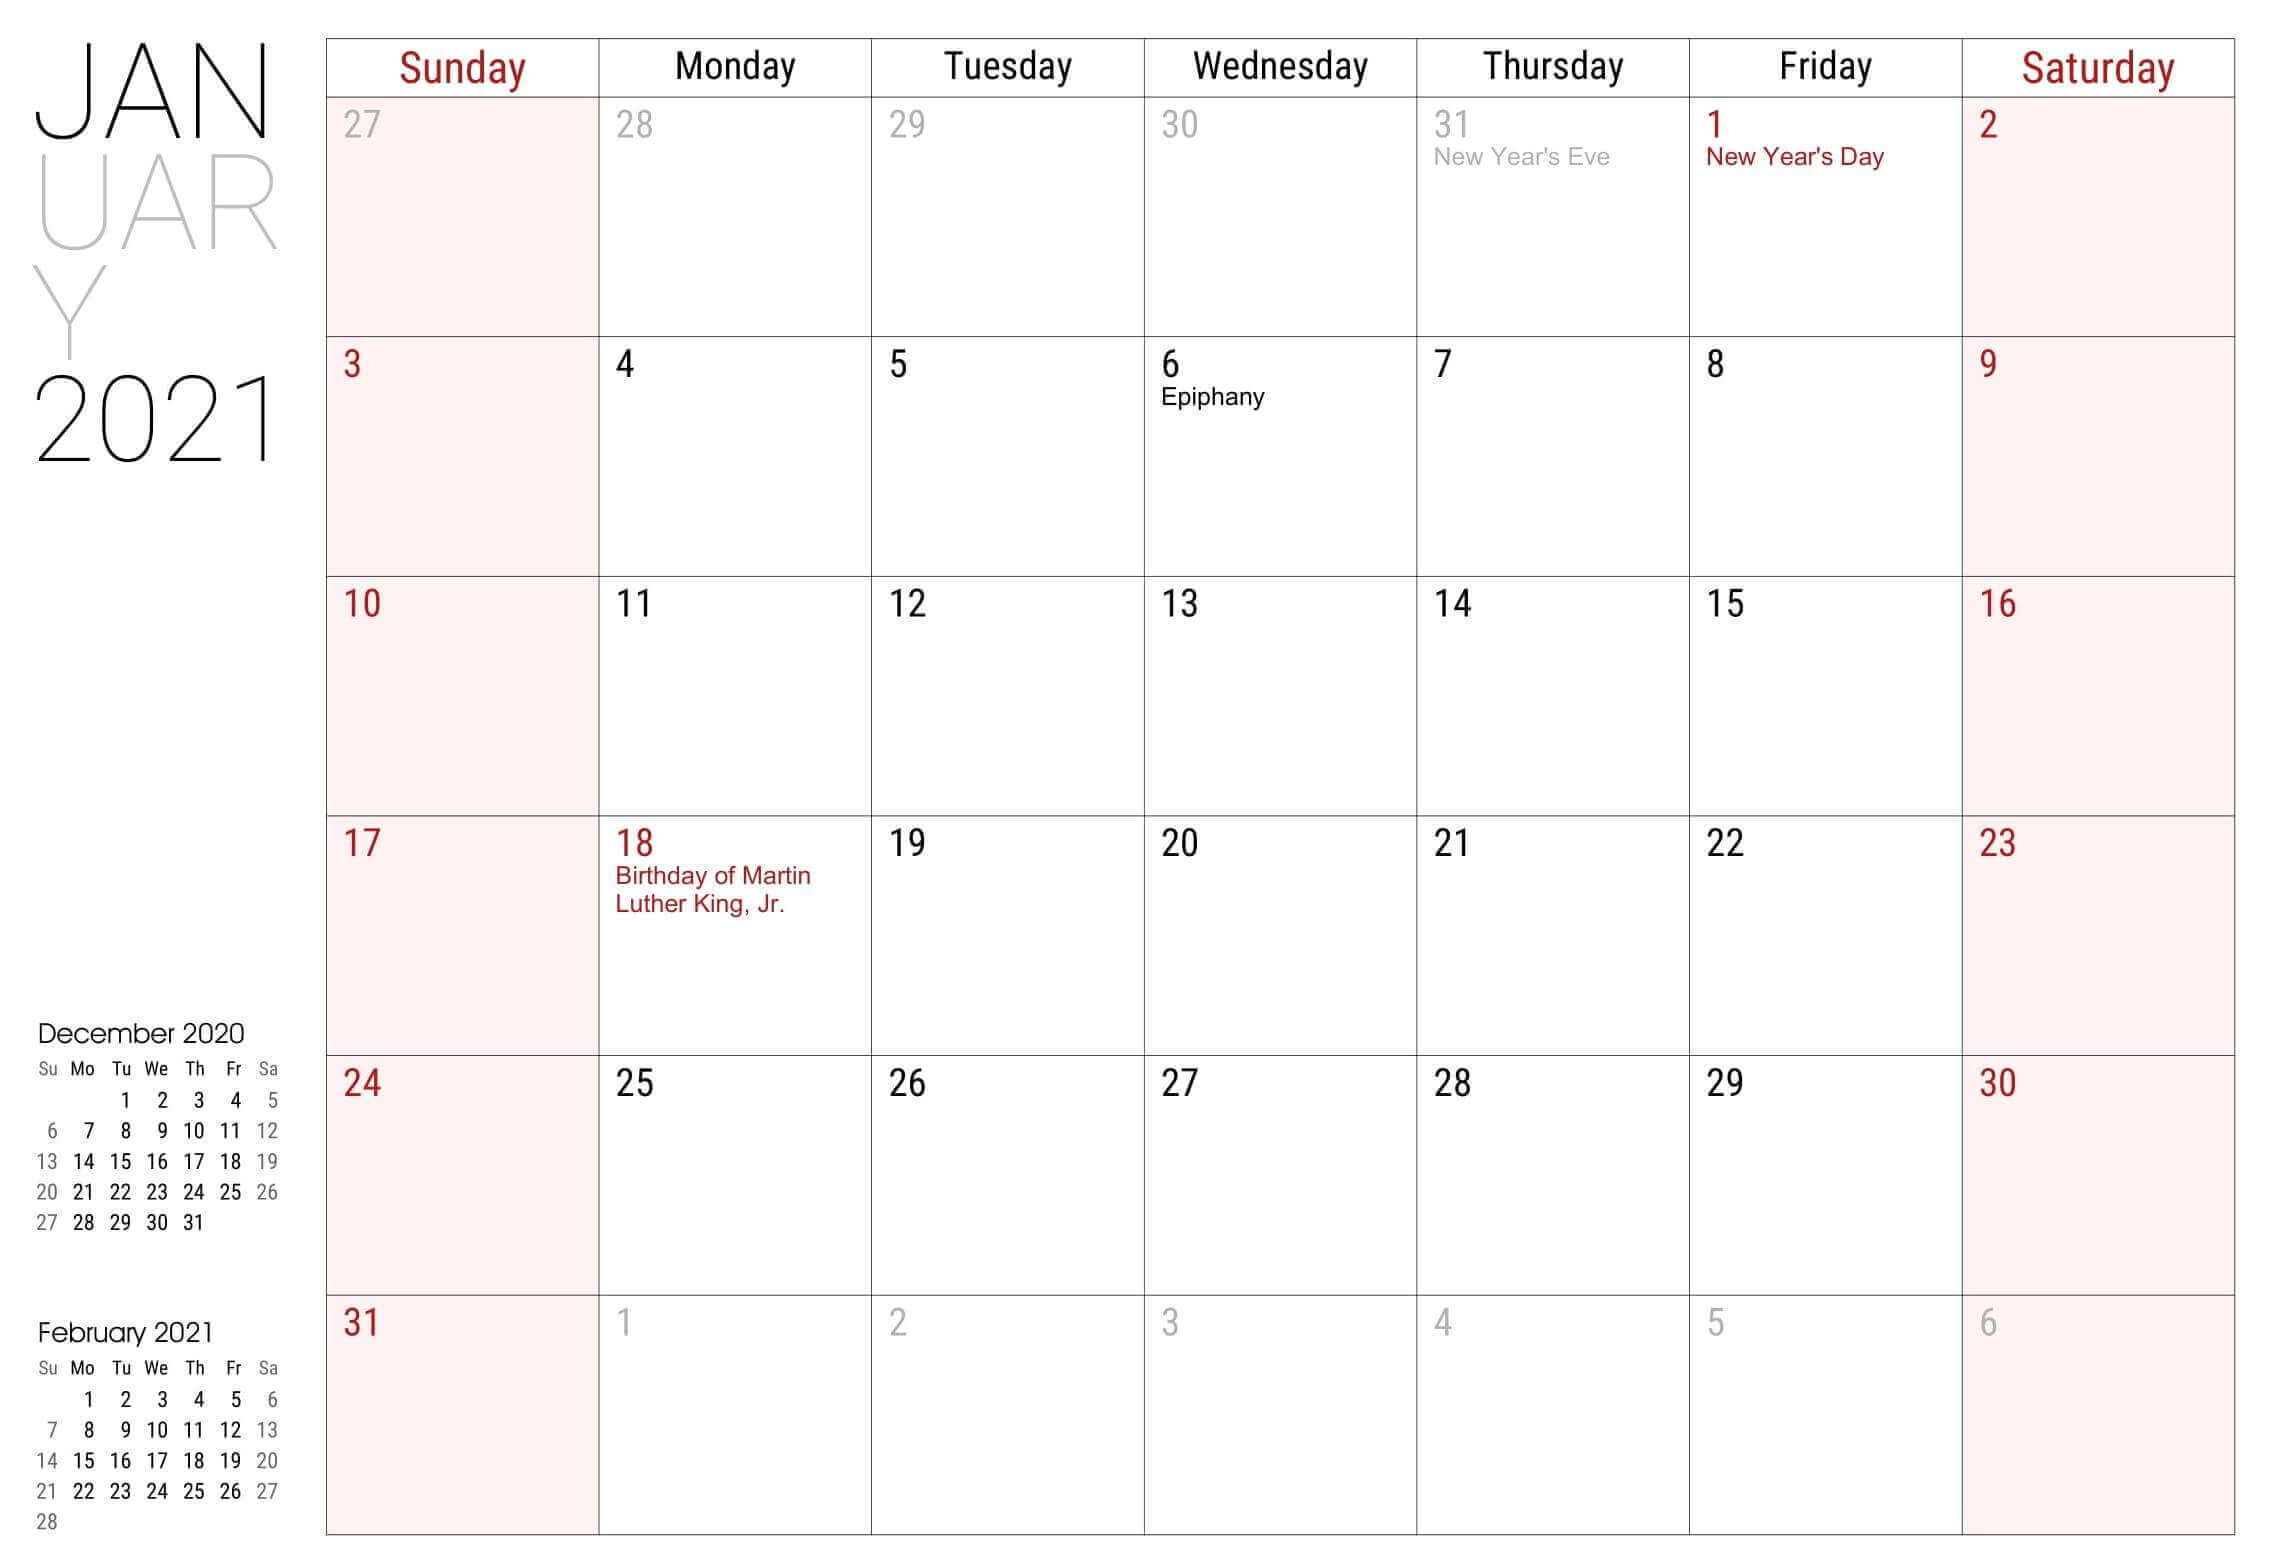 January 2021 Local Holidays Calendar